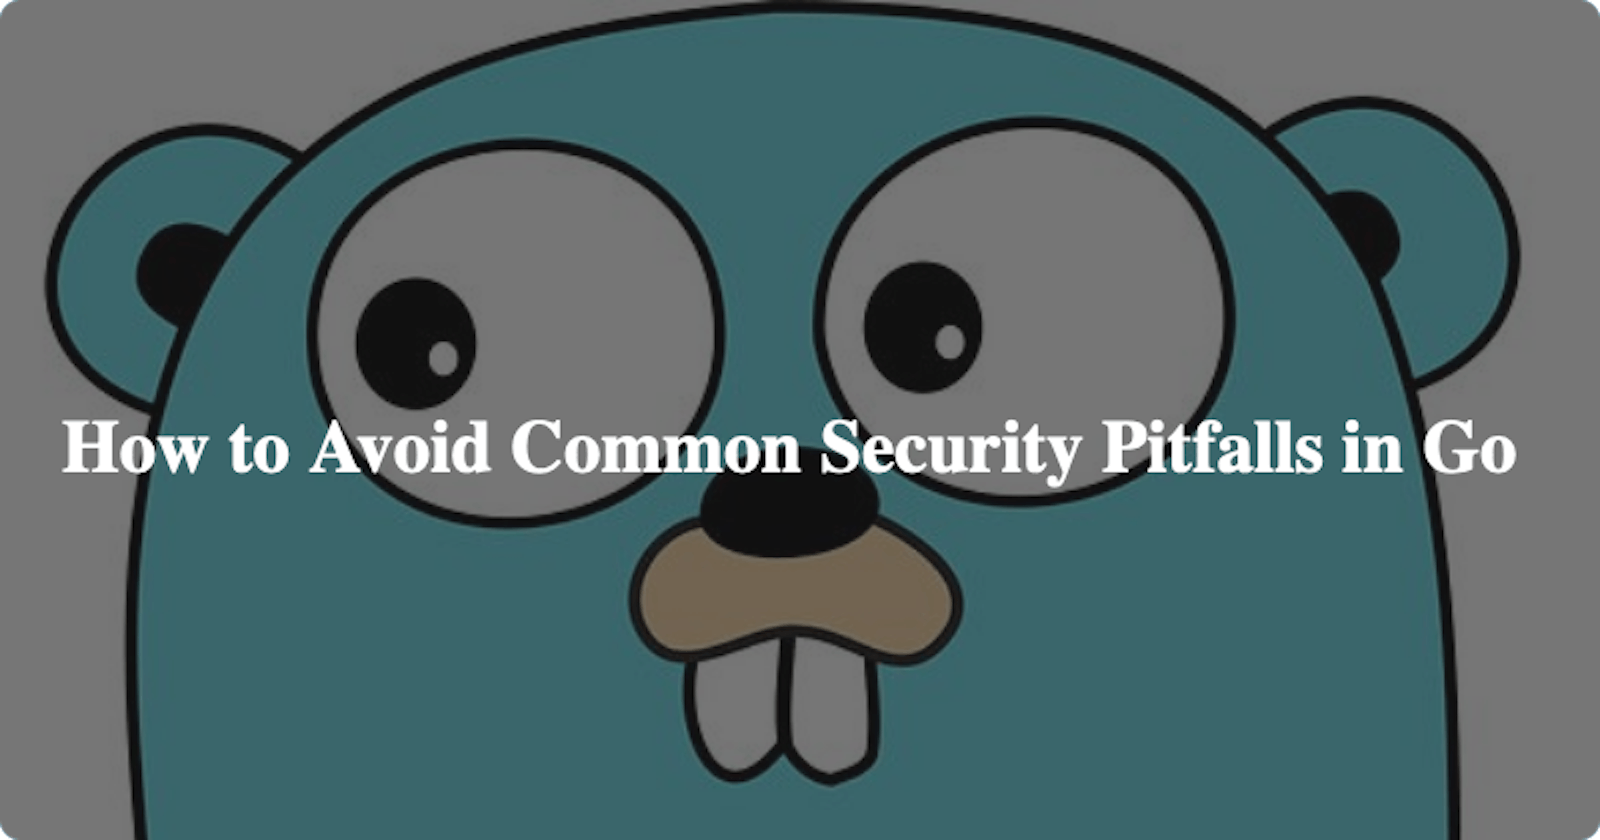 How to Avoid Common Security Pitfalls in Go